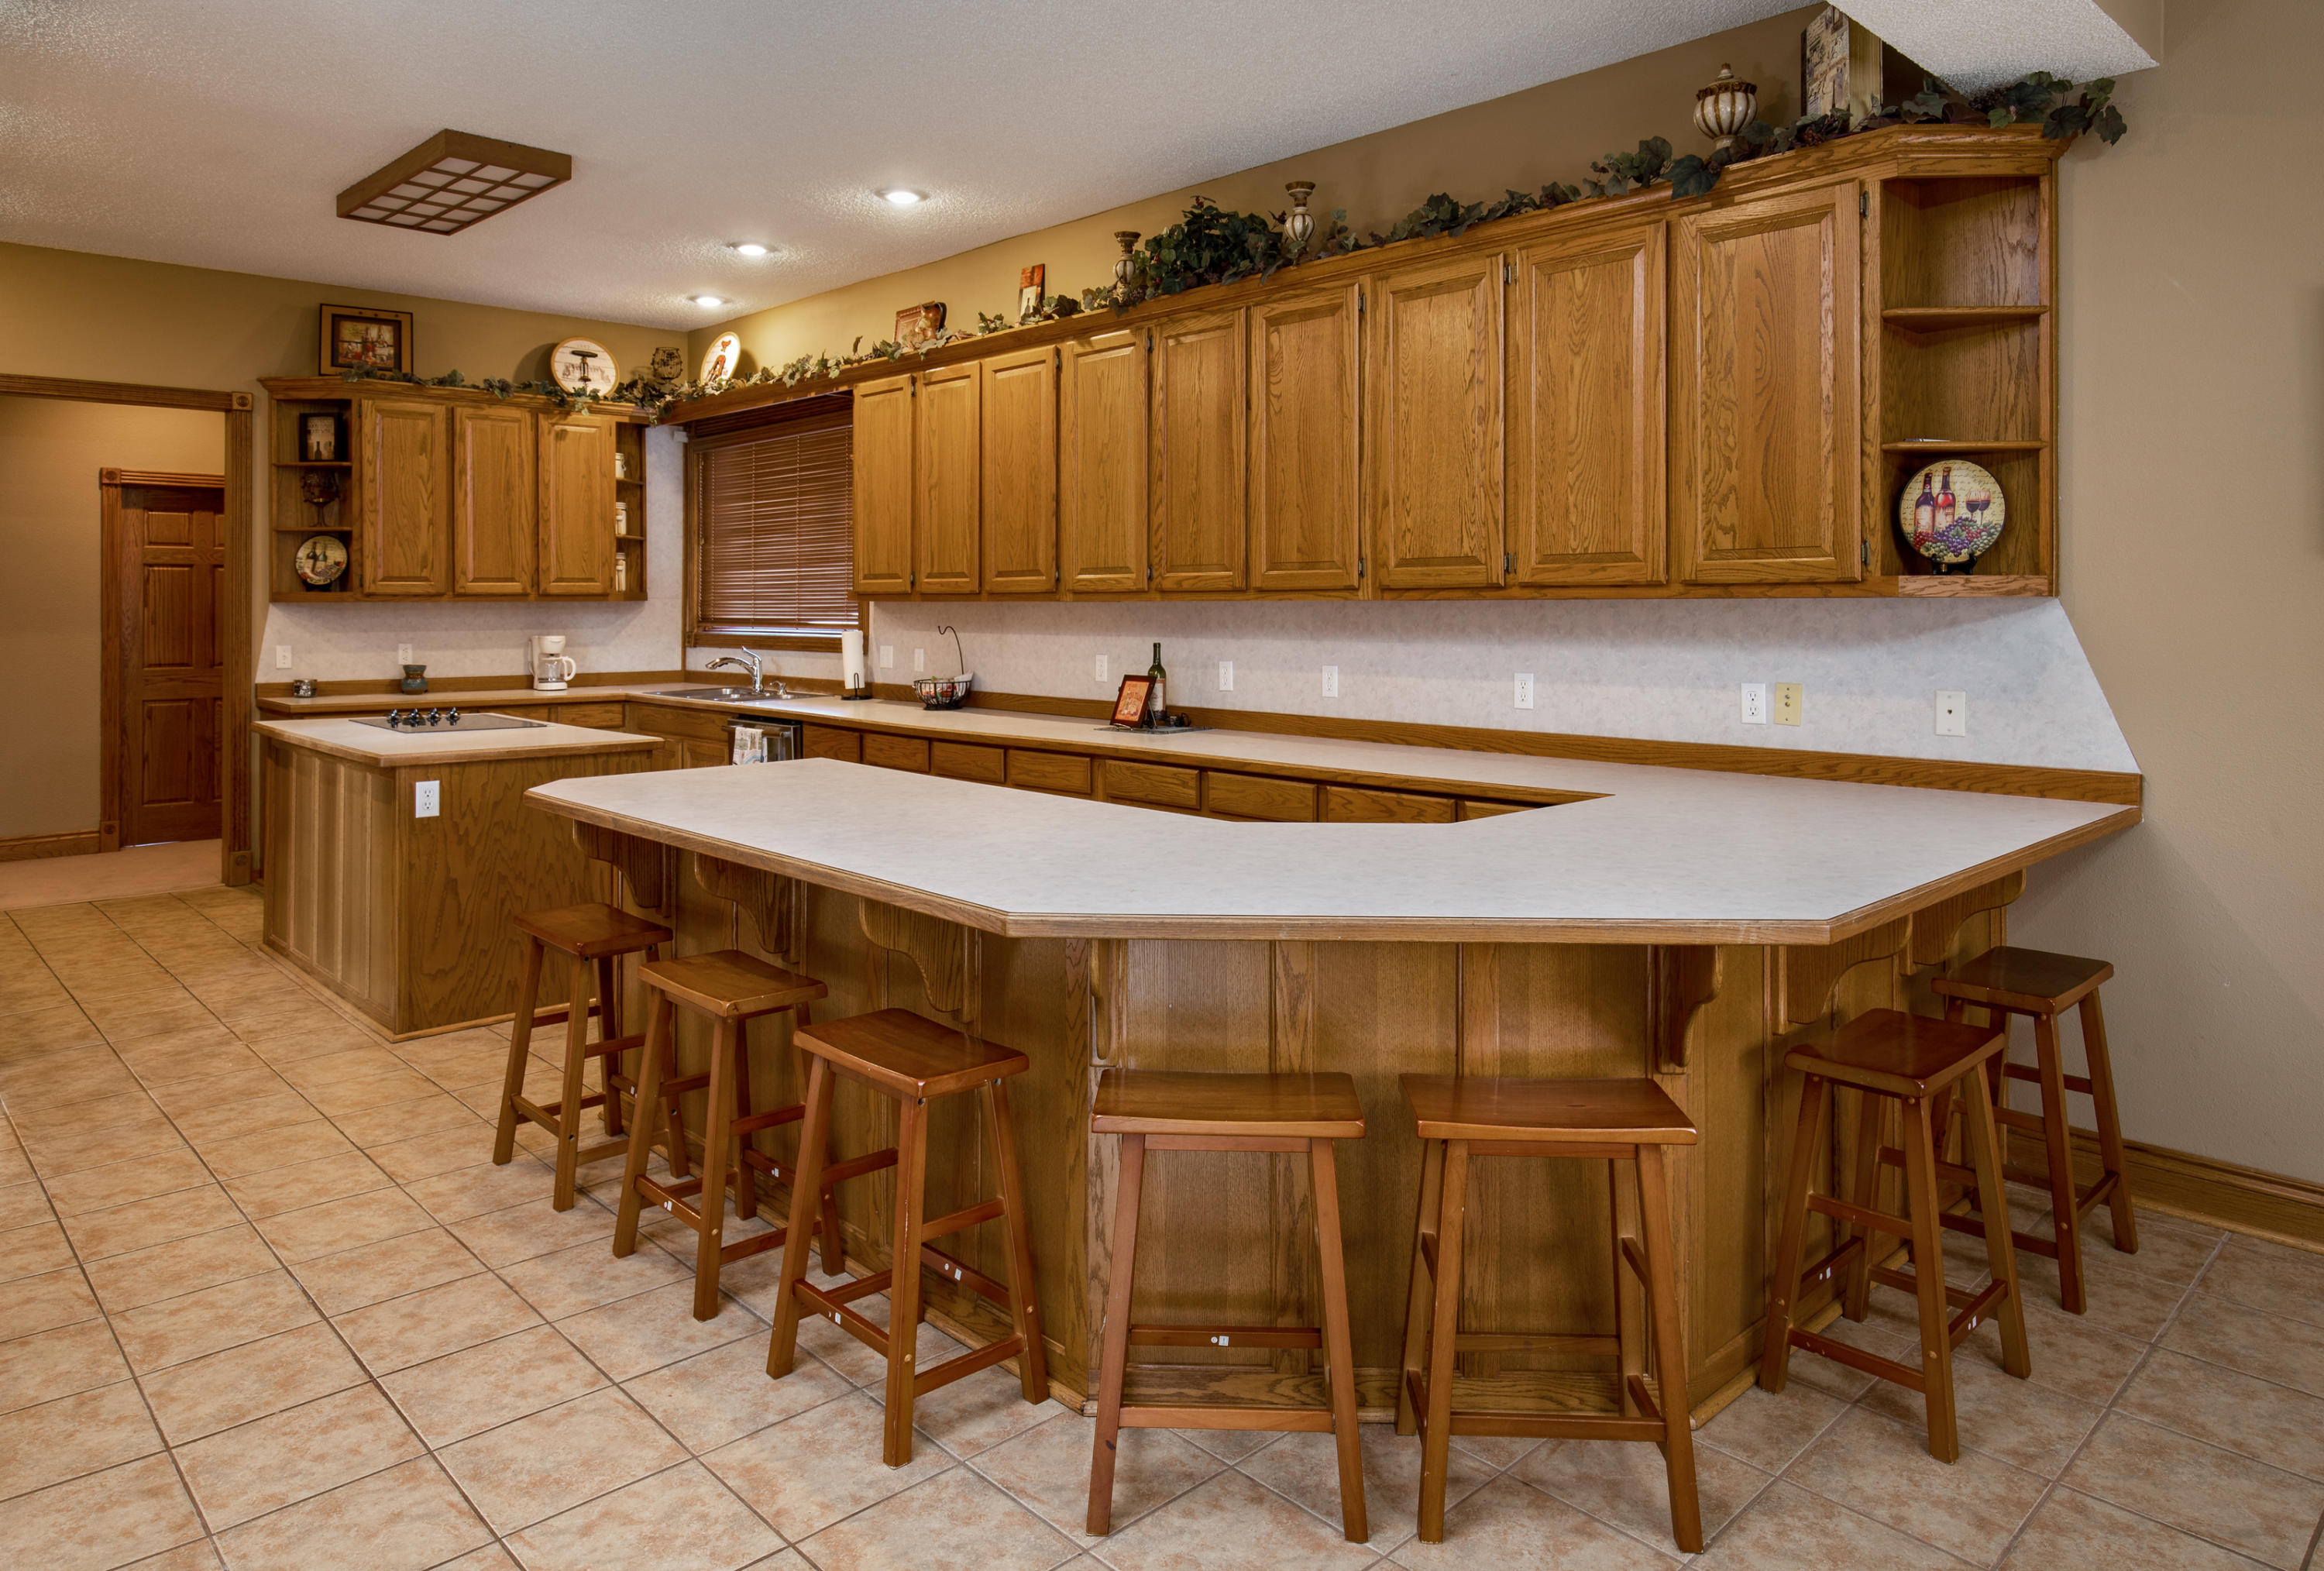 1013 Silvercrest Place Reeds Spring, MO 65737